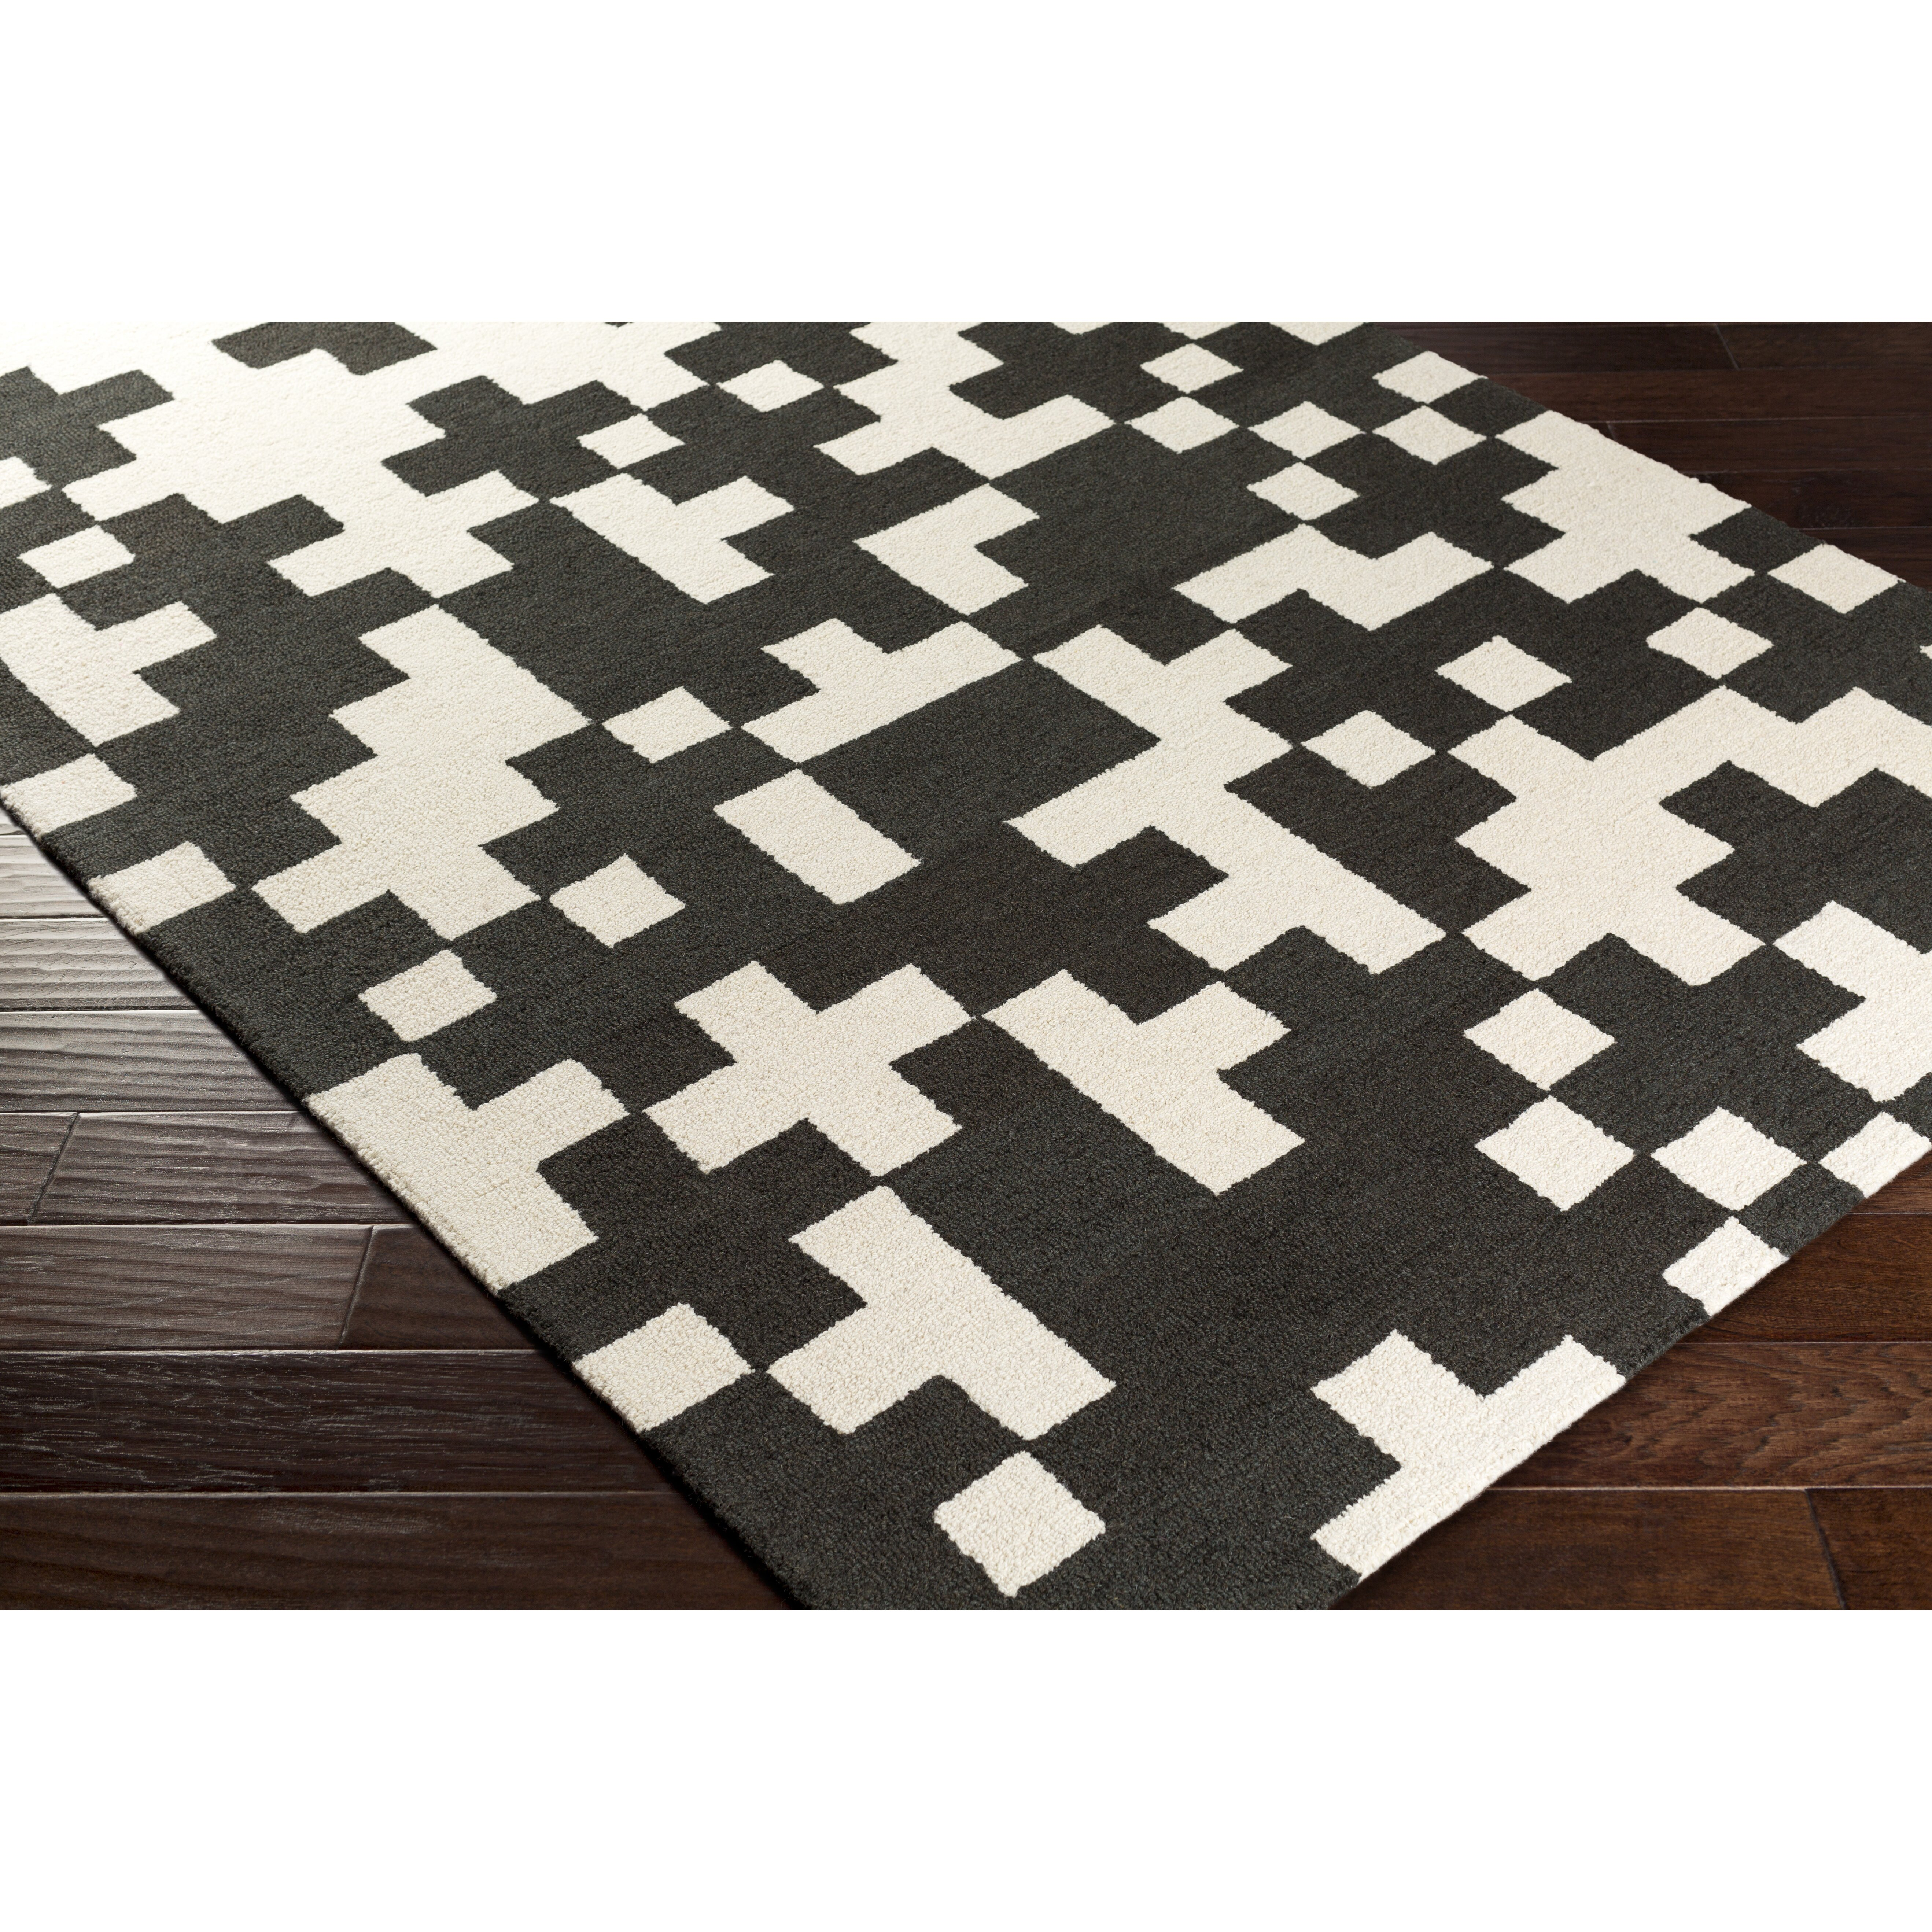 black and white area rug  roselawnlutheran. artistic weavers hilda beatrix handcrafted blackwhite area rug